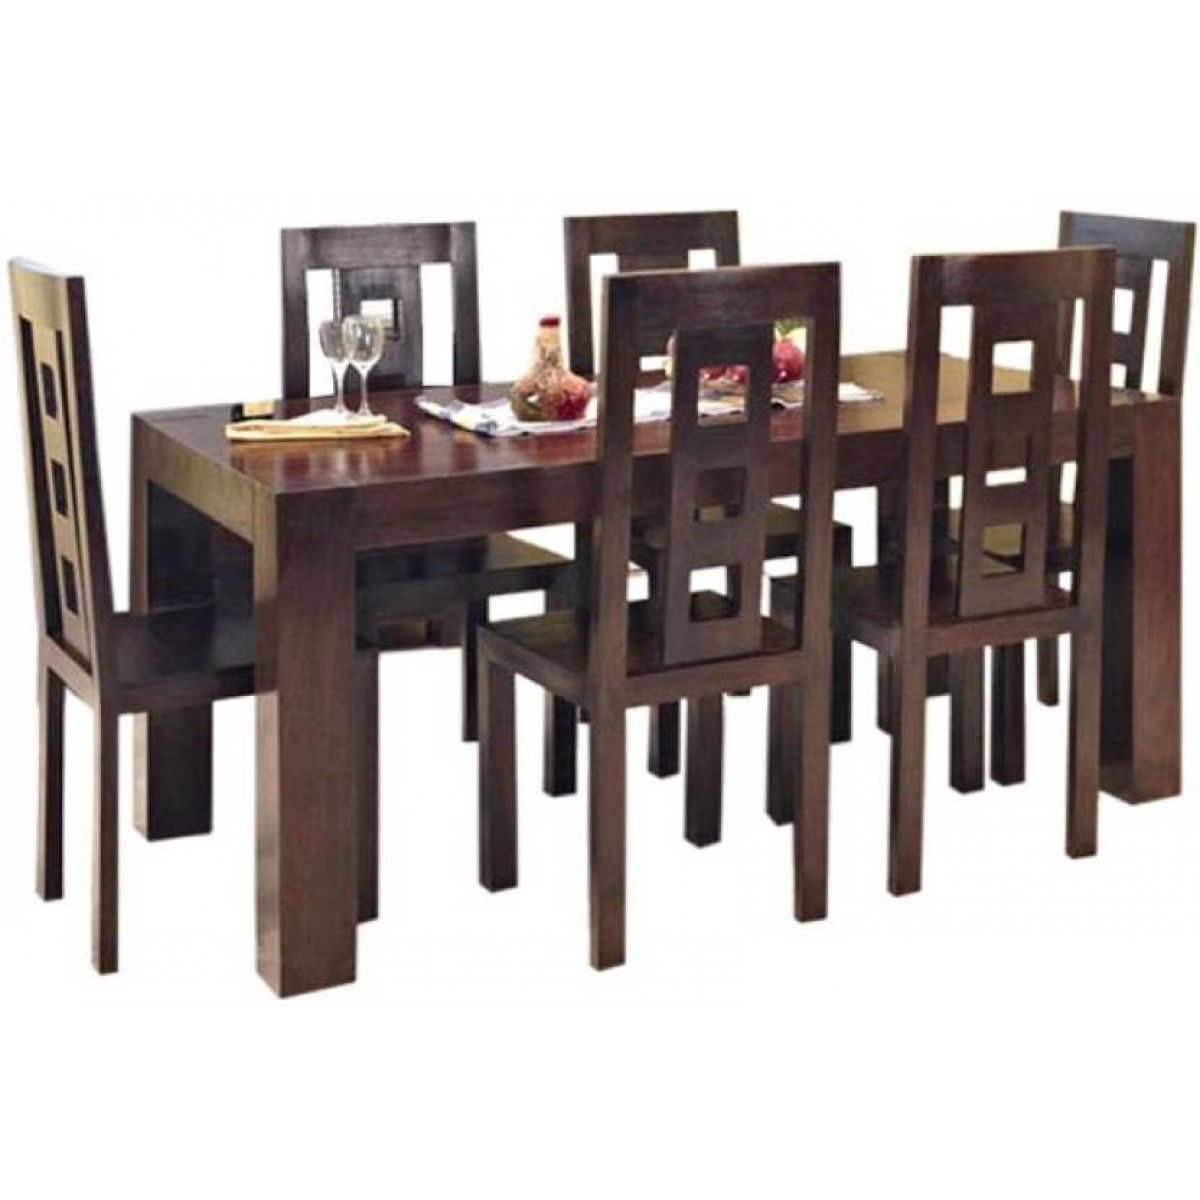 Walnut Rosewood Dining Table Set 6 Seater Set Wooden Dining